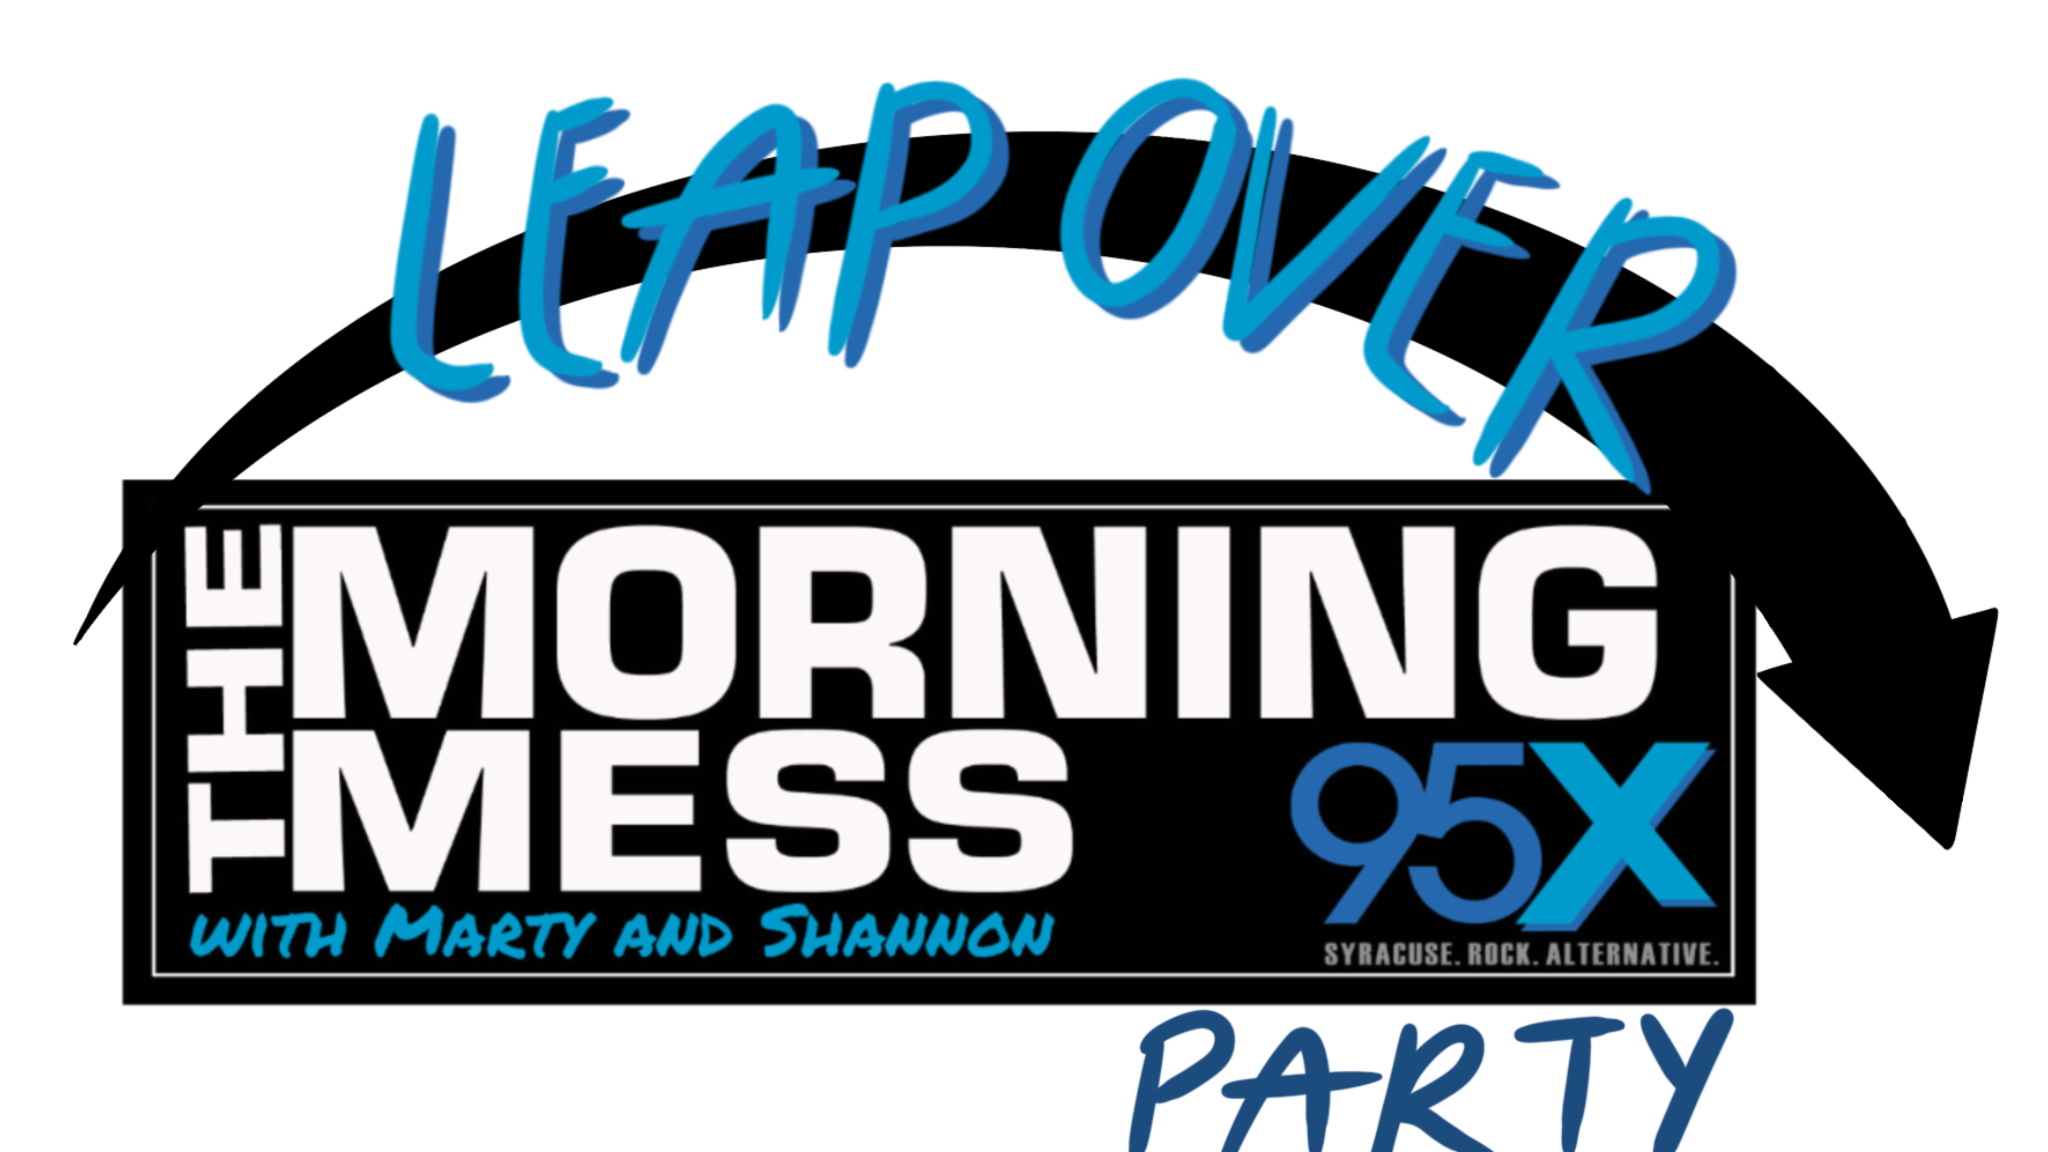 95X Morning Mess Leap Over Hotel Party